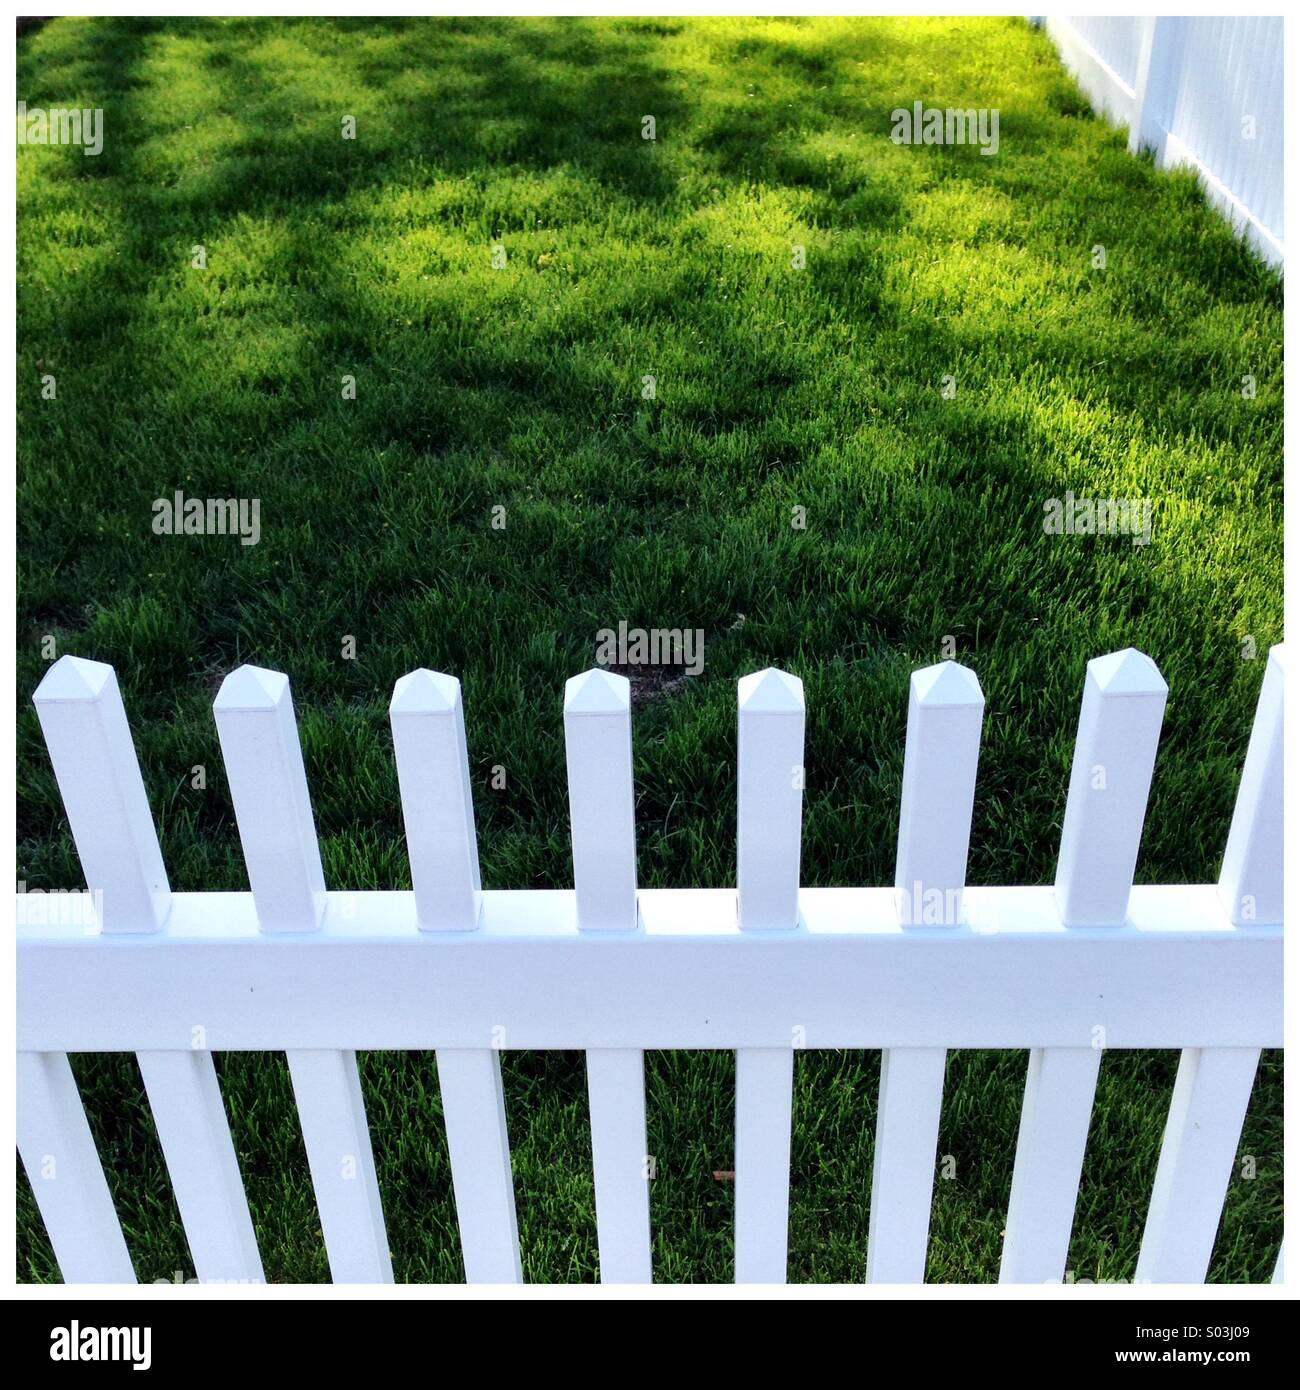 White picket fence - Stock Image